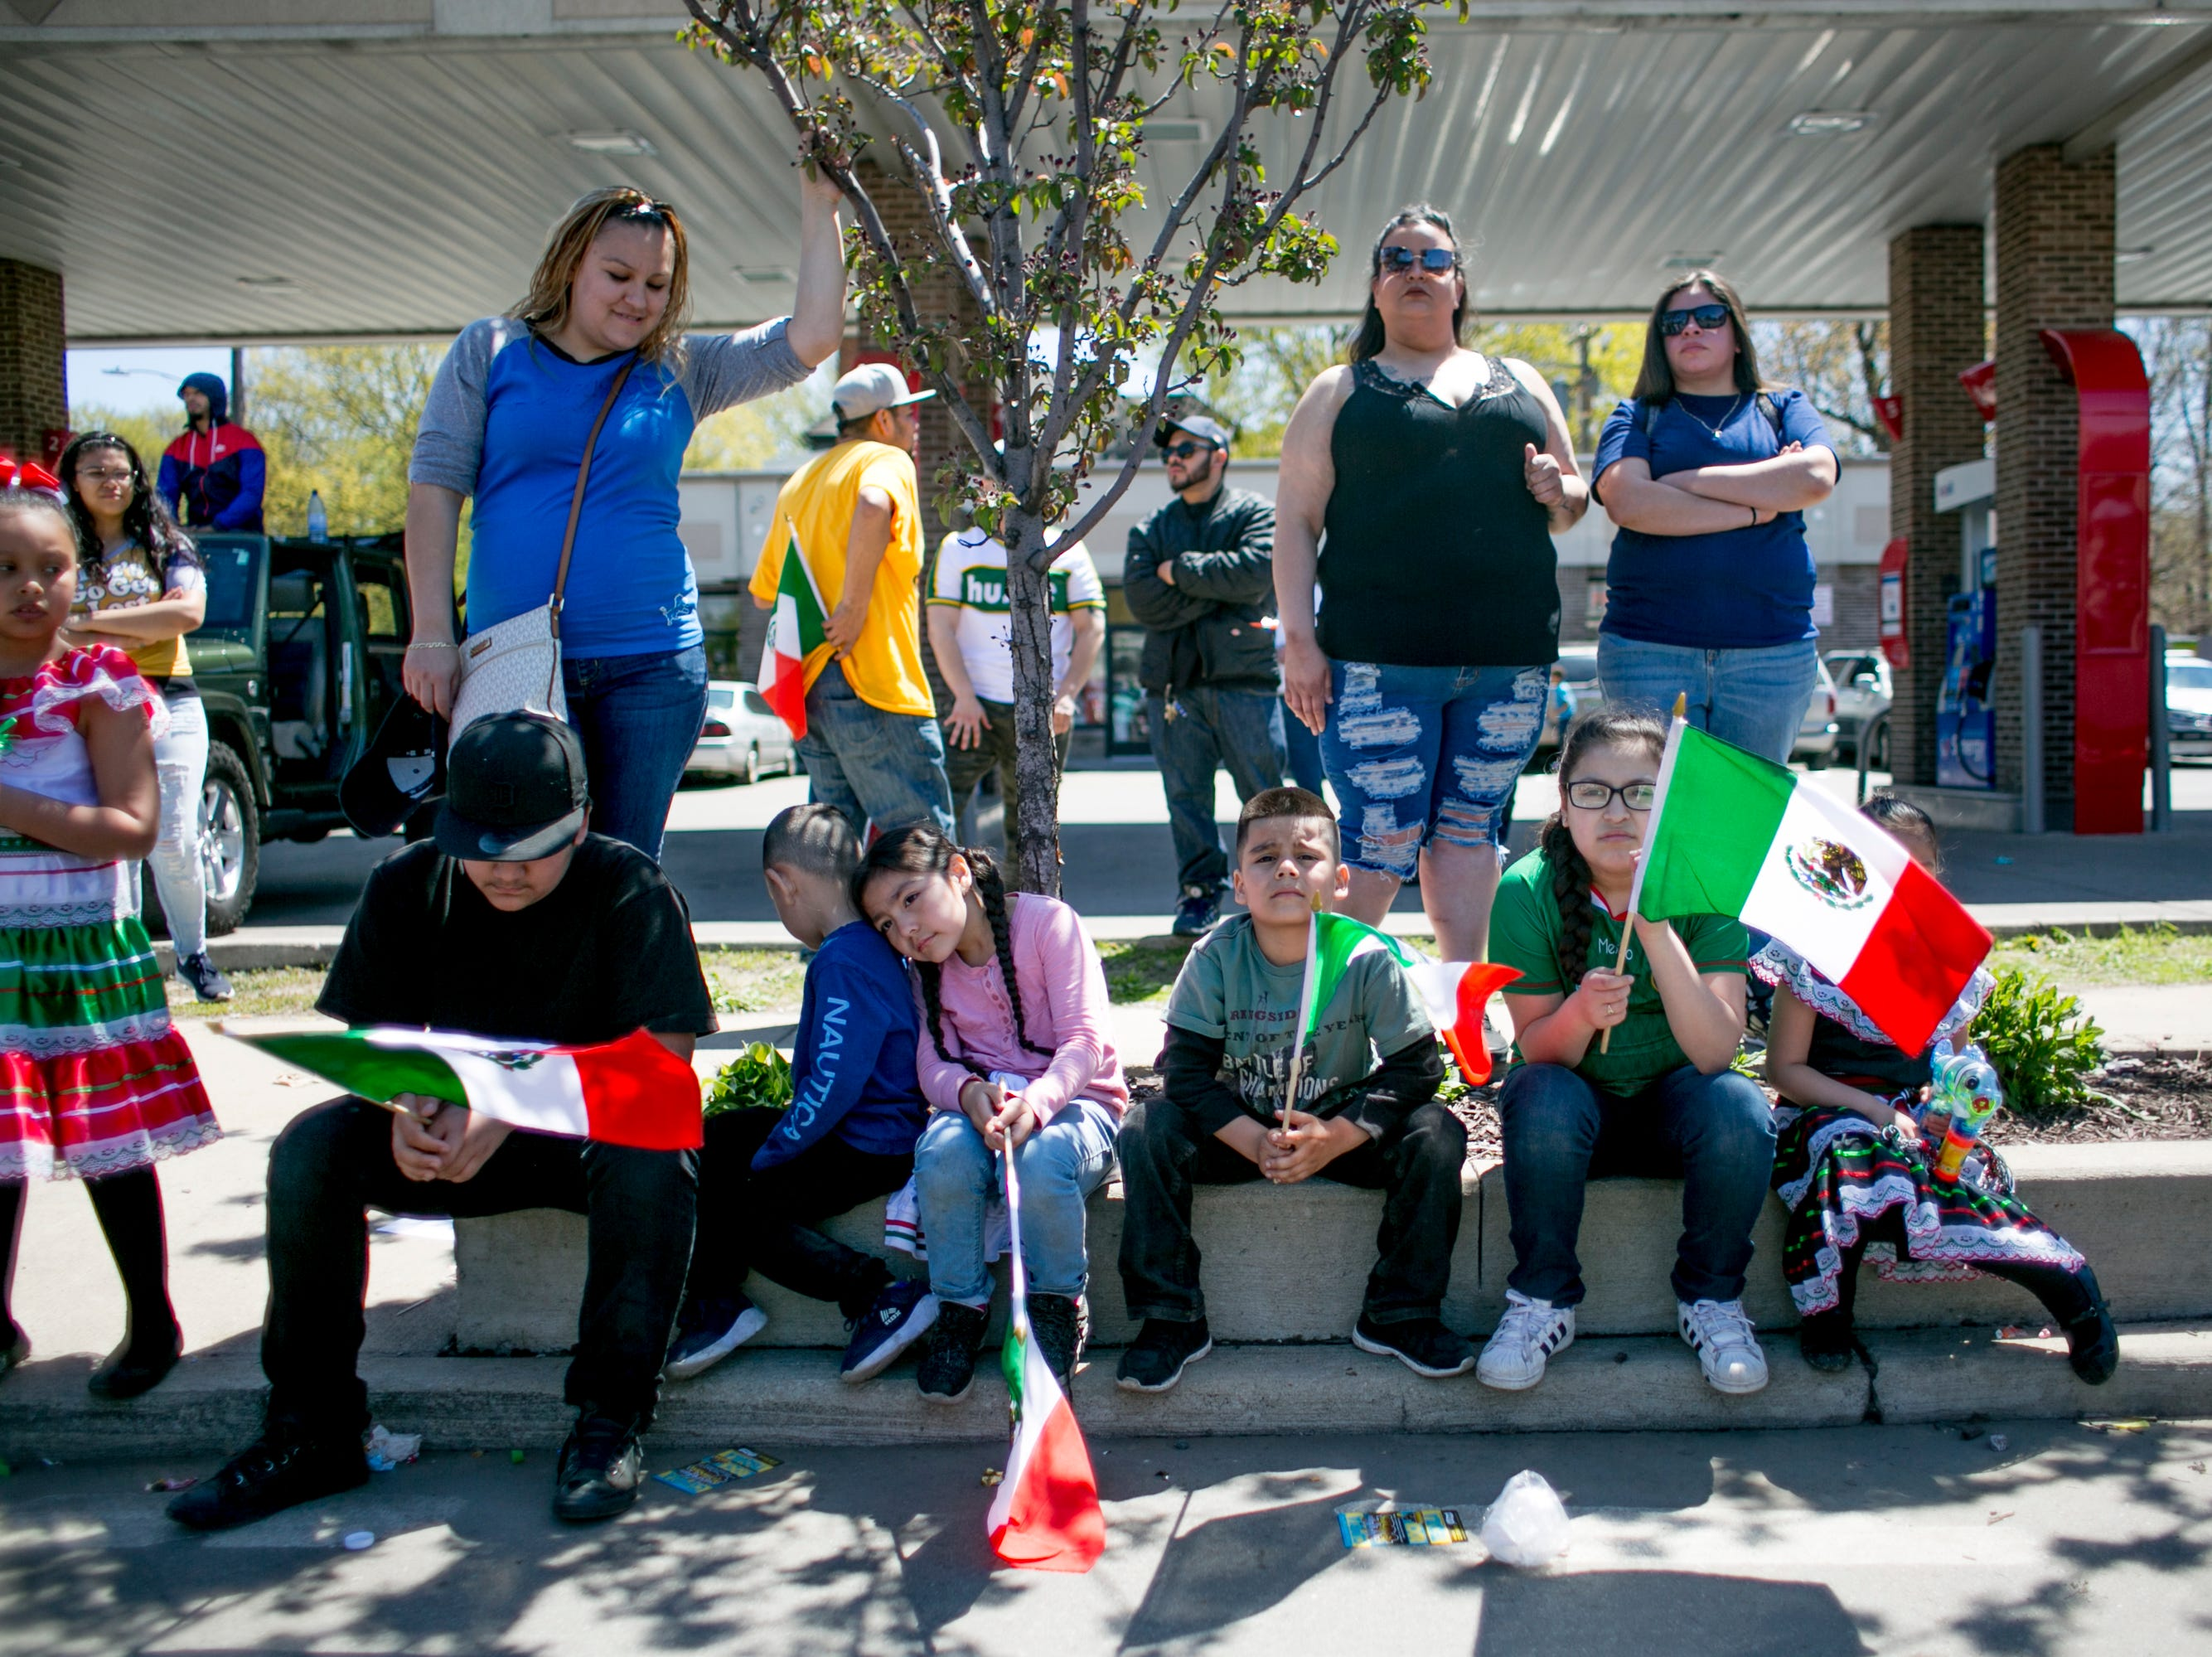 People watch  the 55th Annual Cinco de Mayo parade along Vernor Highway in southwest Detroit.